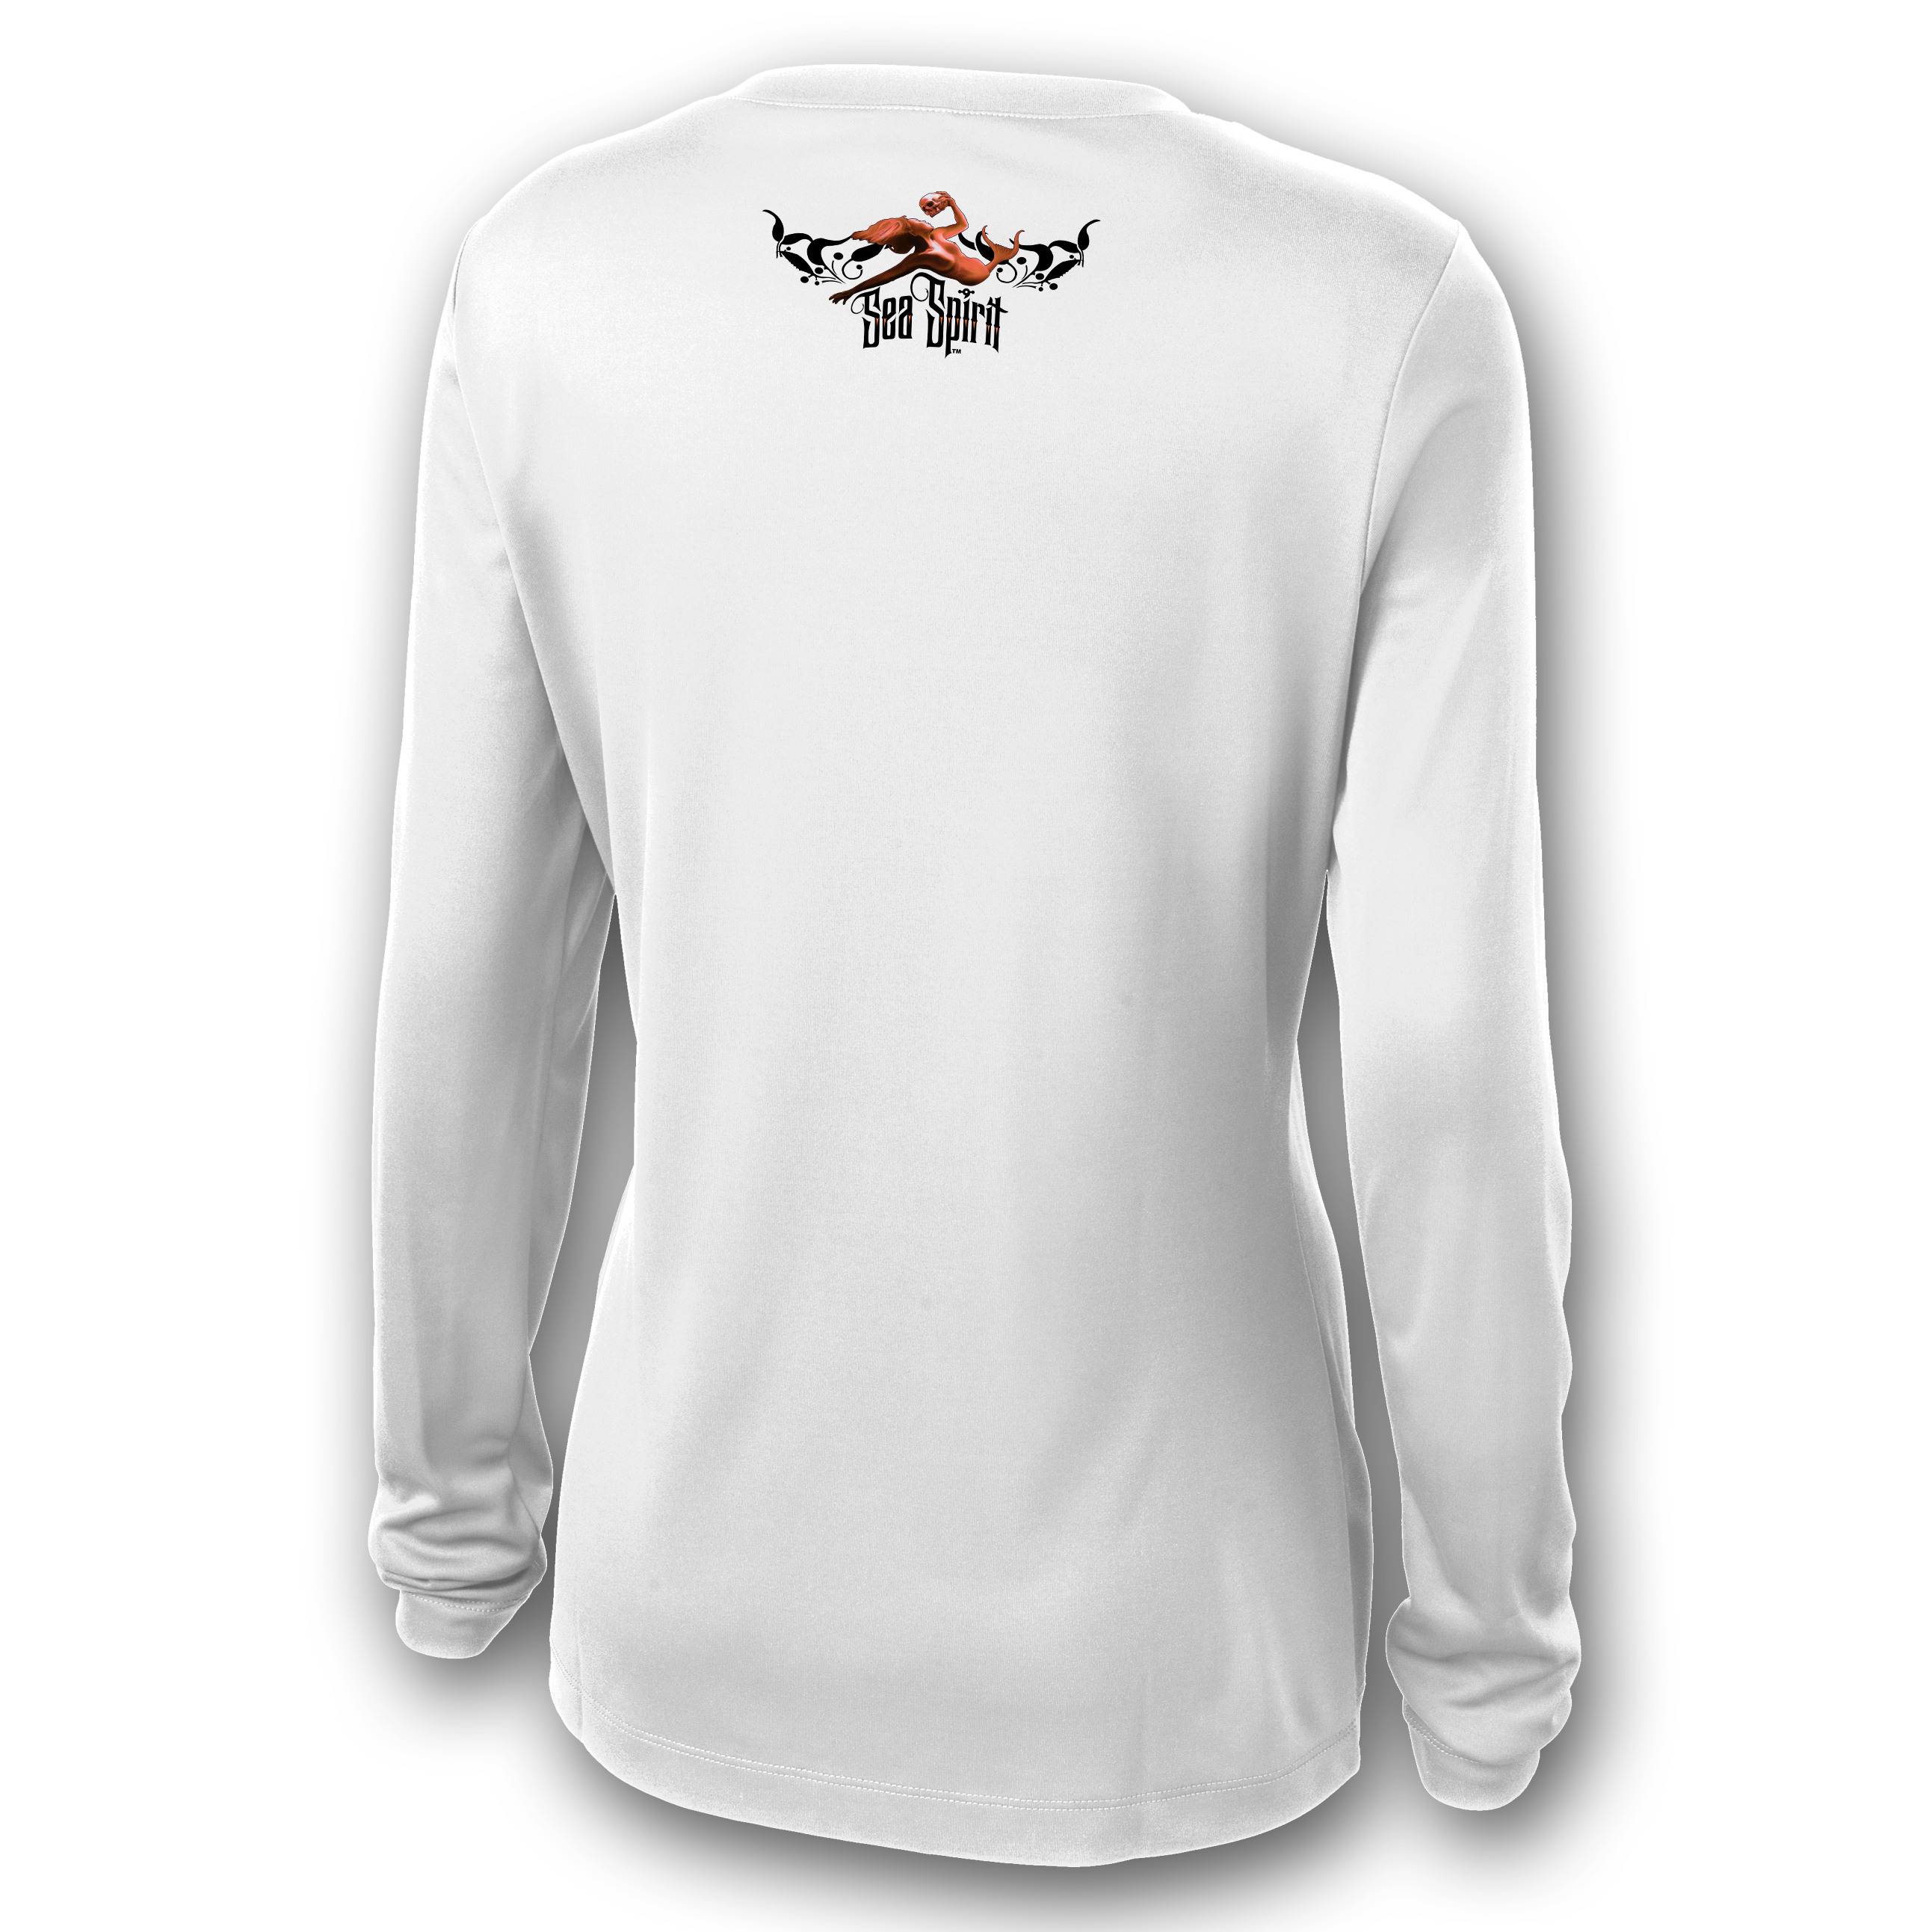 sea-spirit-back-white-hogfish-v-neck-shirt-jason-mathias.png